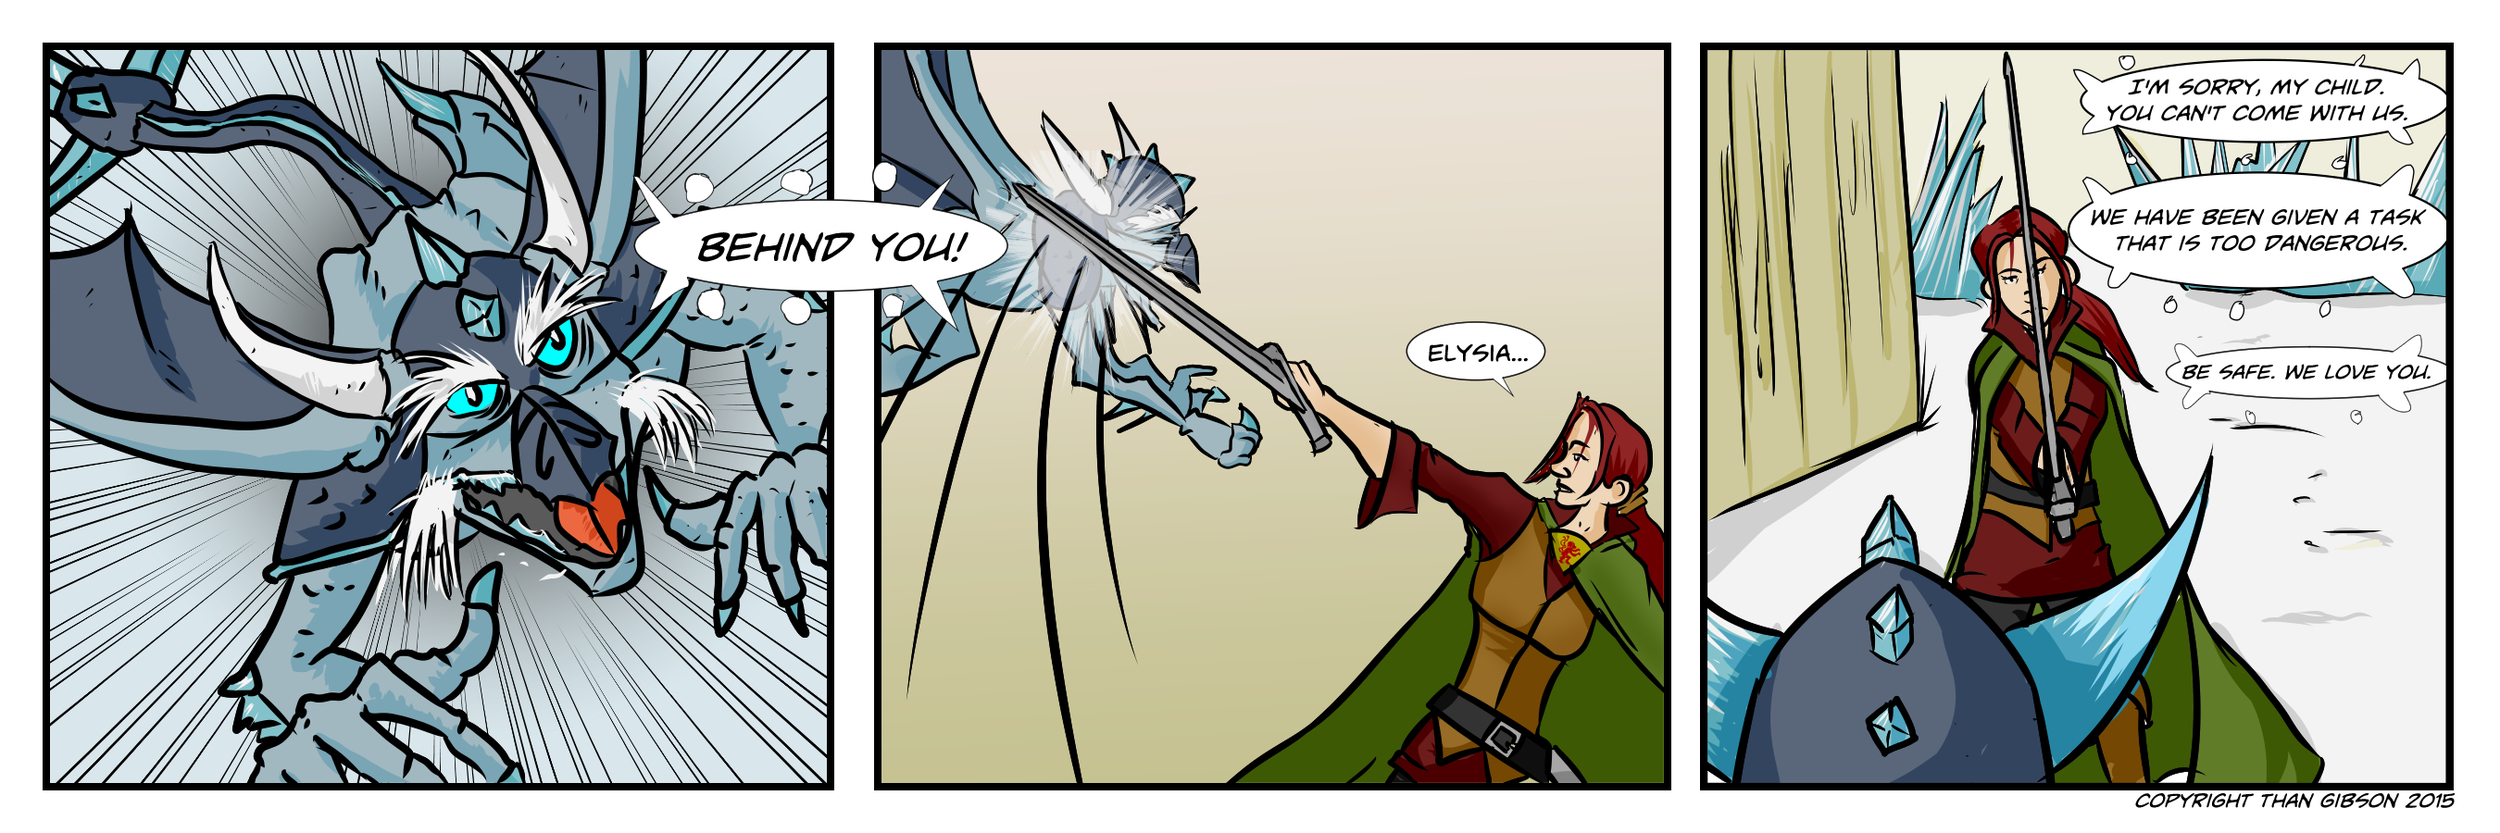 A Chronicle of Thieves -Chapter 2, Strip 18